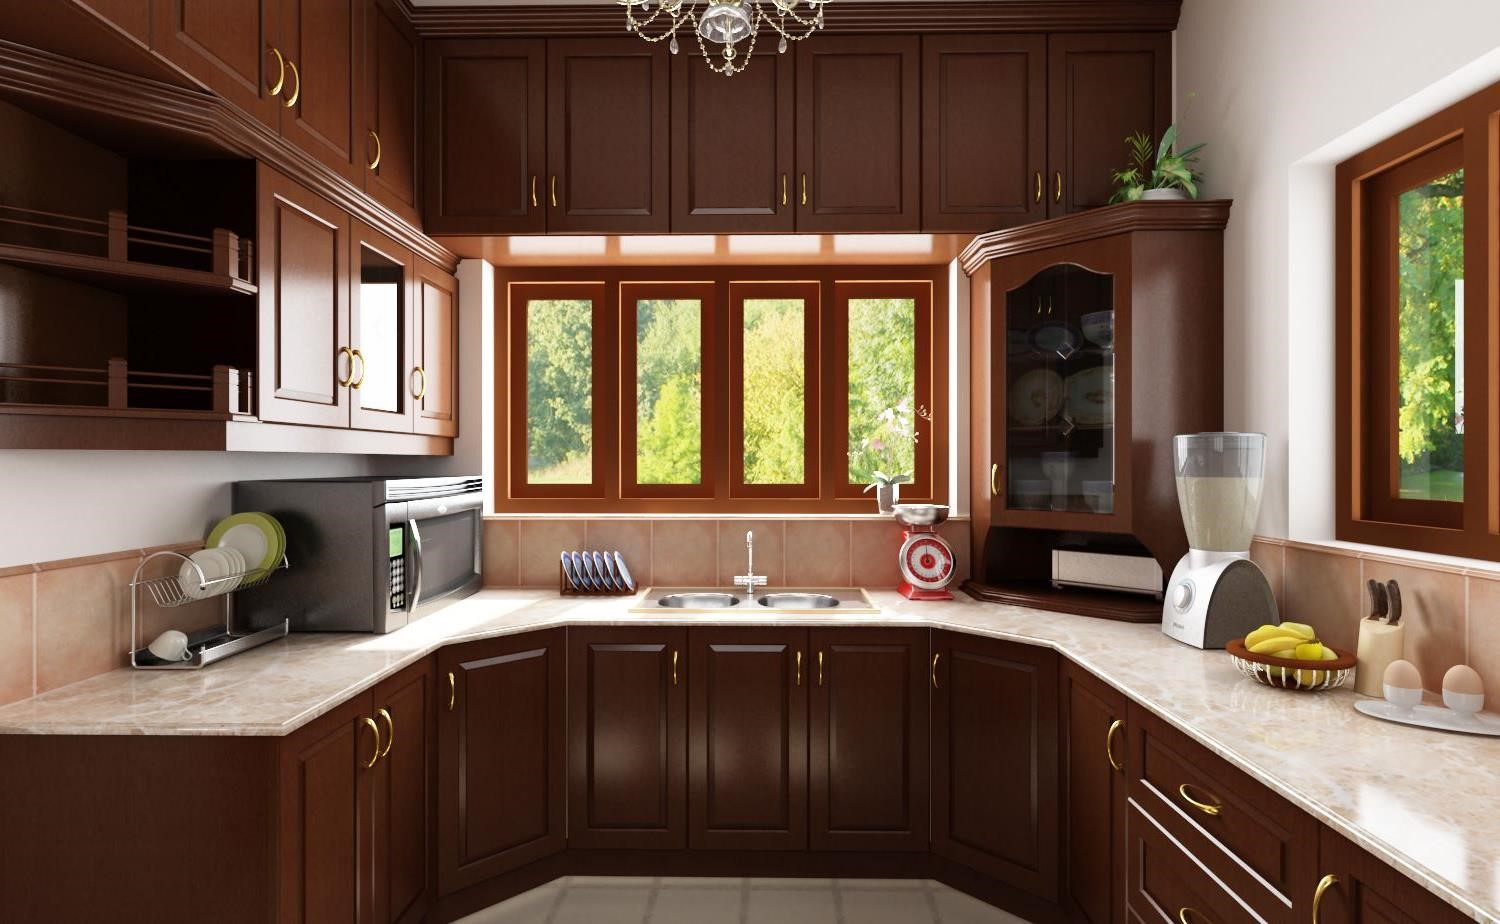 Traditional Kitchen Design on Formality and Functionality ... on Traditional Kitchen Decor  id=90009